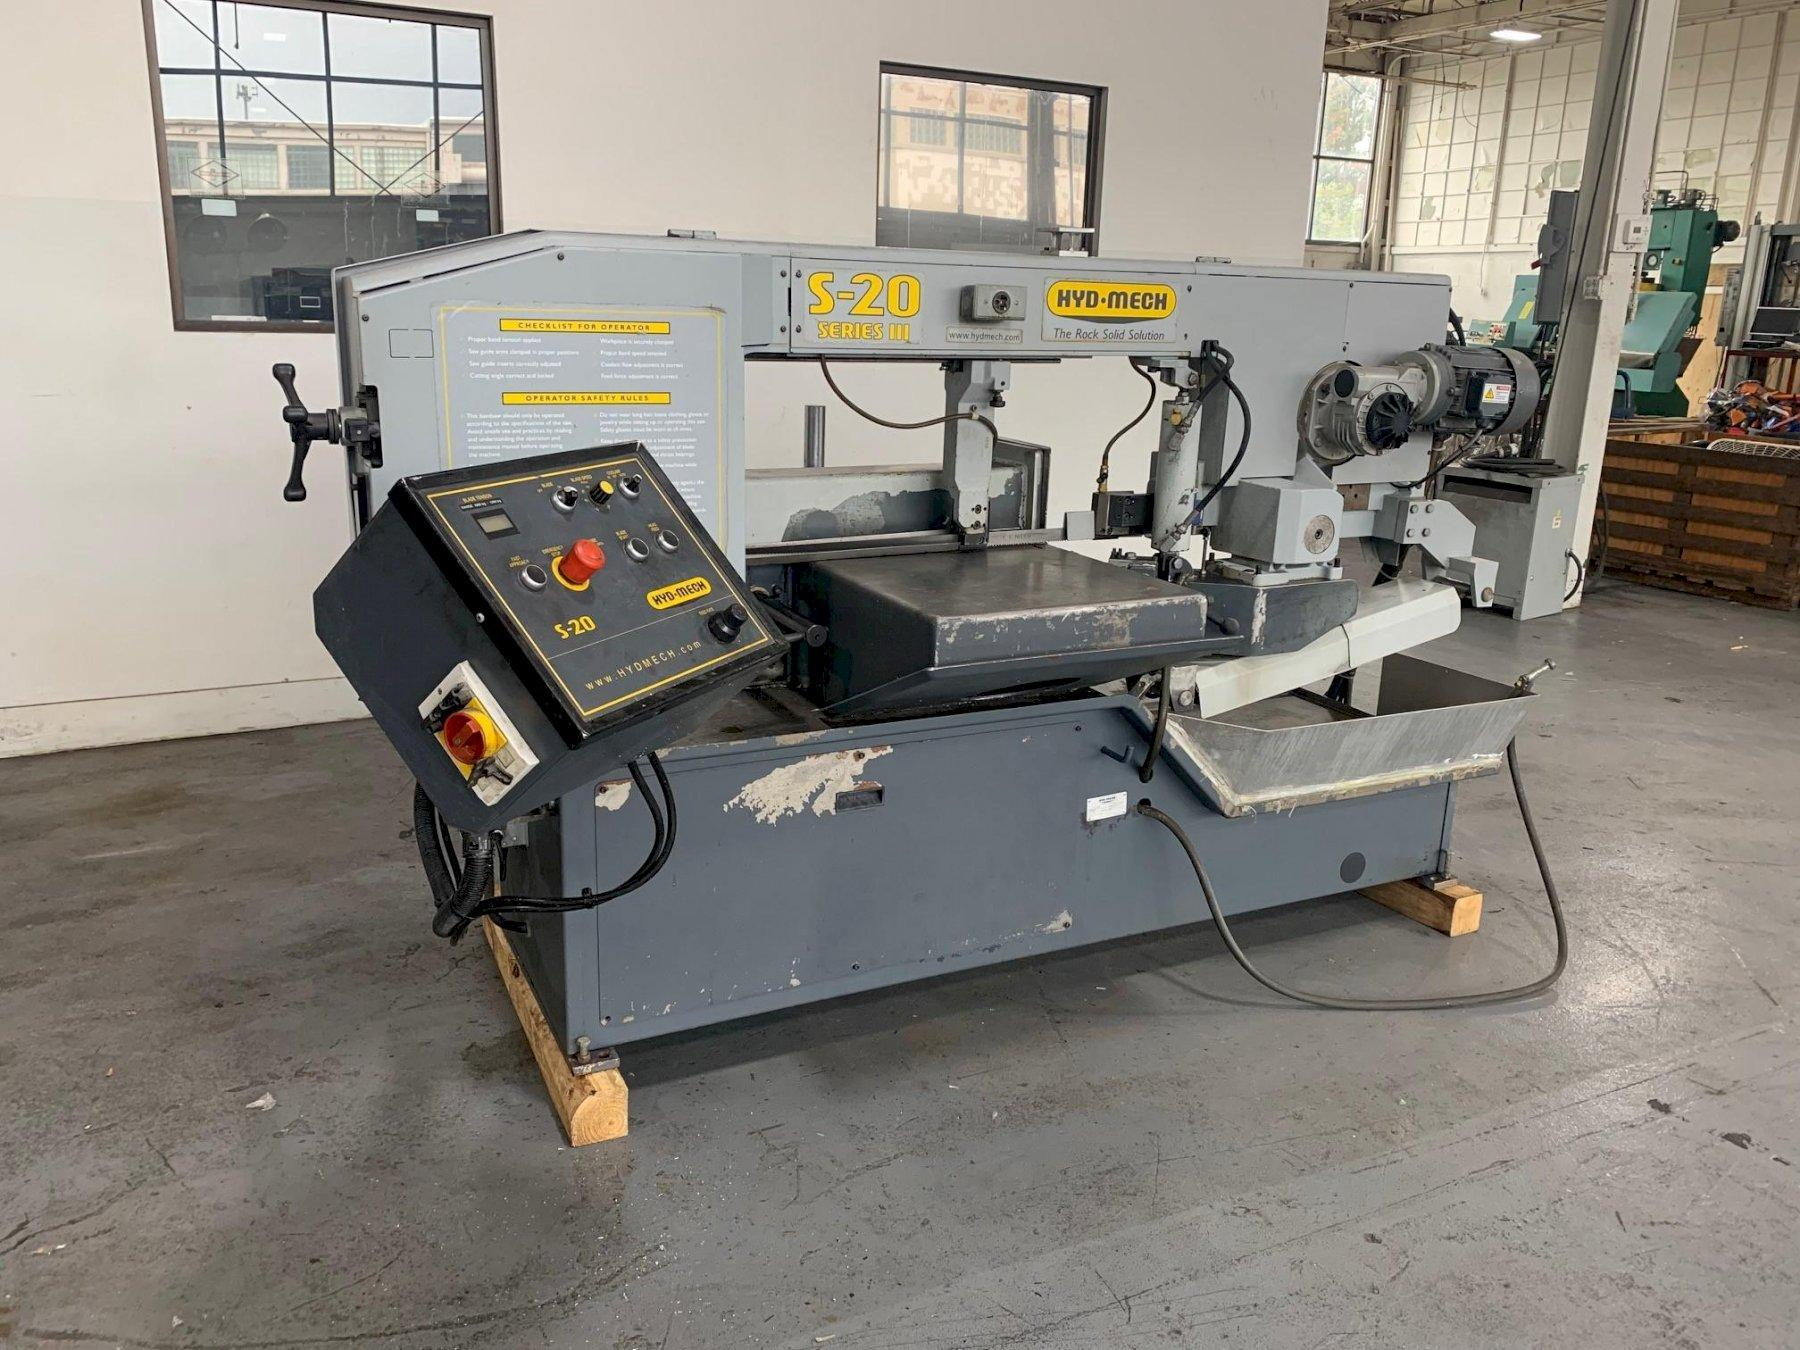 """USED HYD-MECH MODEL S-20 13"""" X 18"""" MANUAL MITERING BANDSAW, Stock# 10873, Year: 2006"""